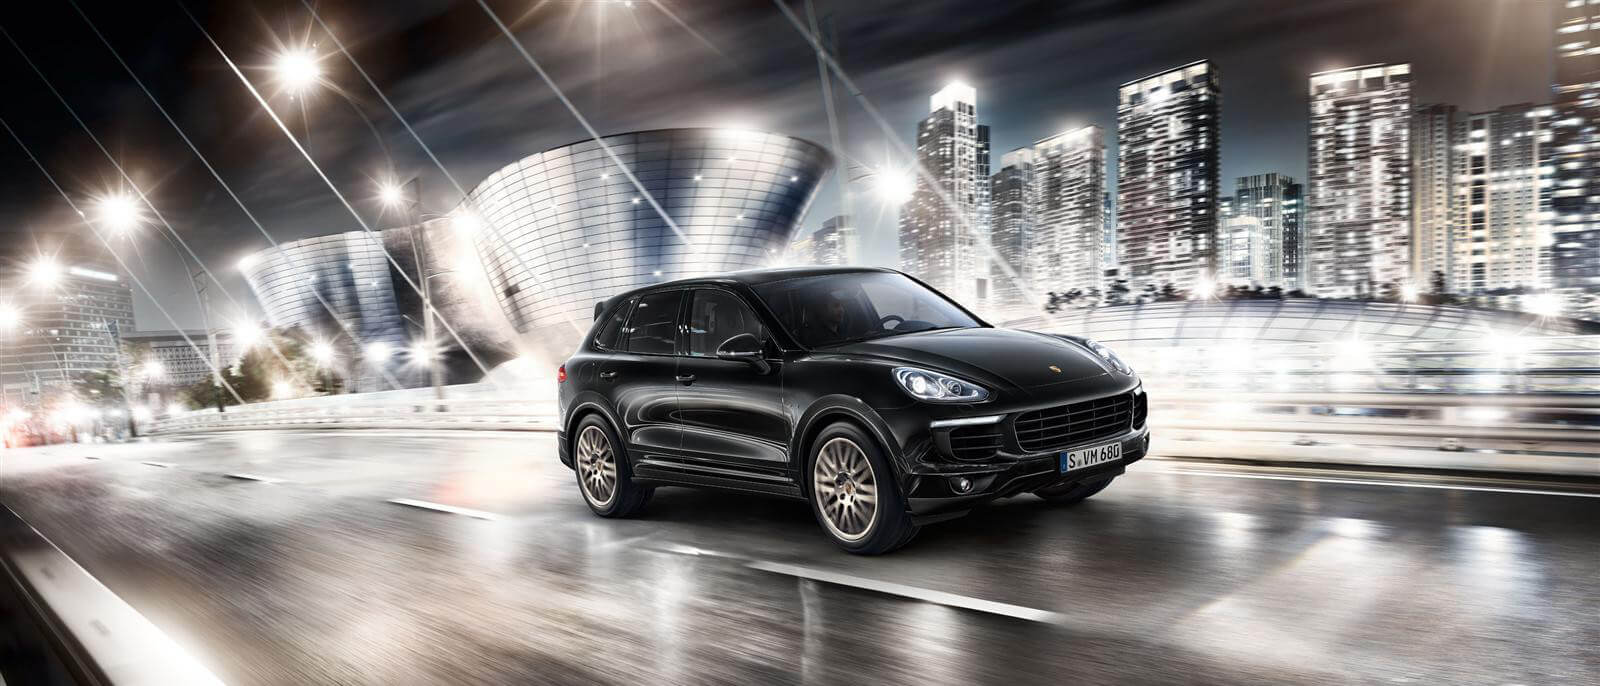 Porsche Cayenne Platinum Edition S E-Hybrid Platinum on road